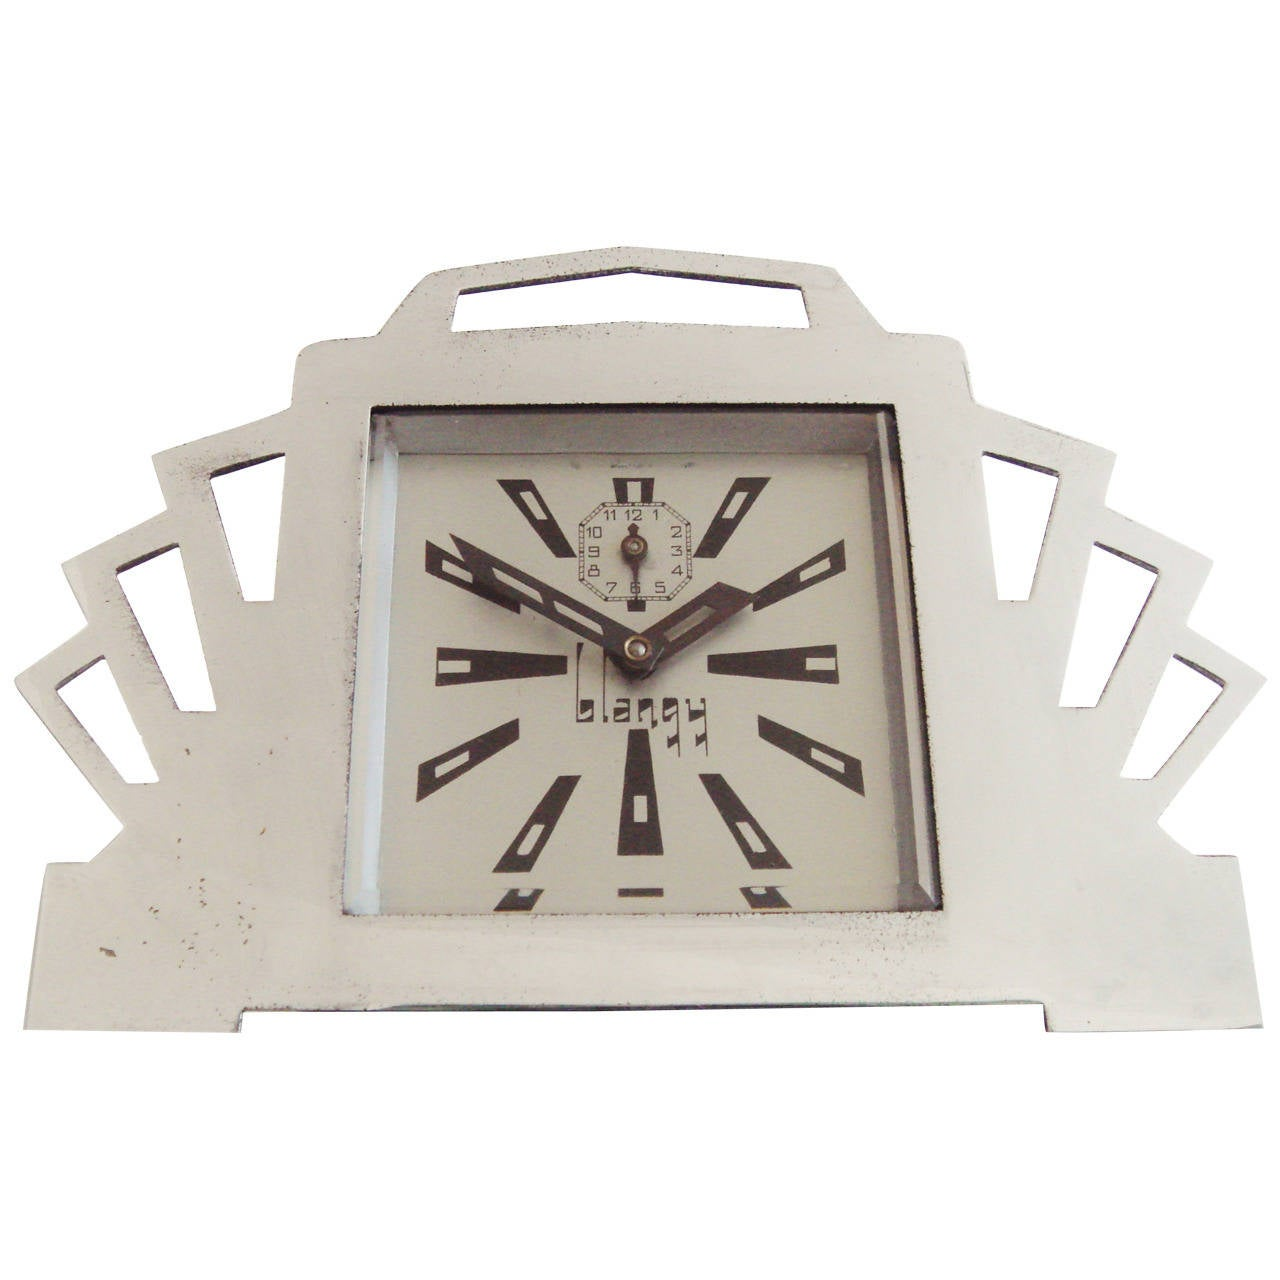 French Ultra Art Deco Styled Chrome and Black Mechanical Alarm Clock by Blangy For Sale